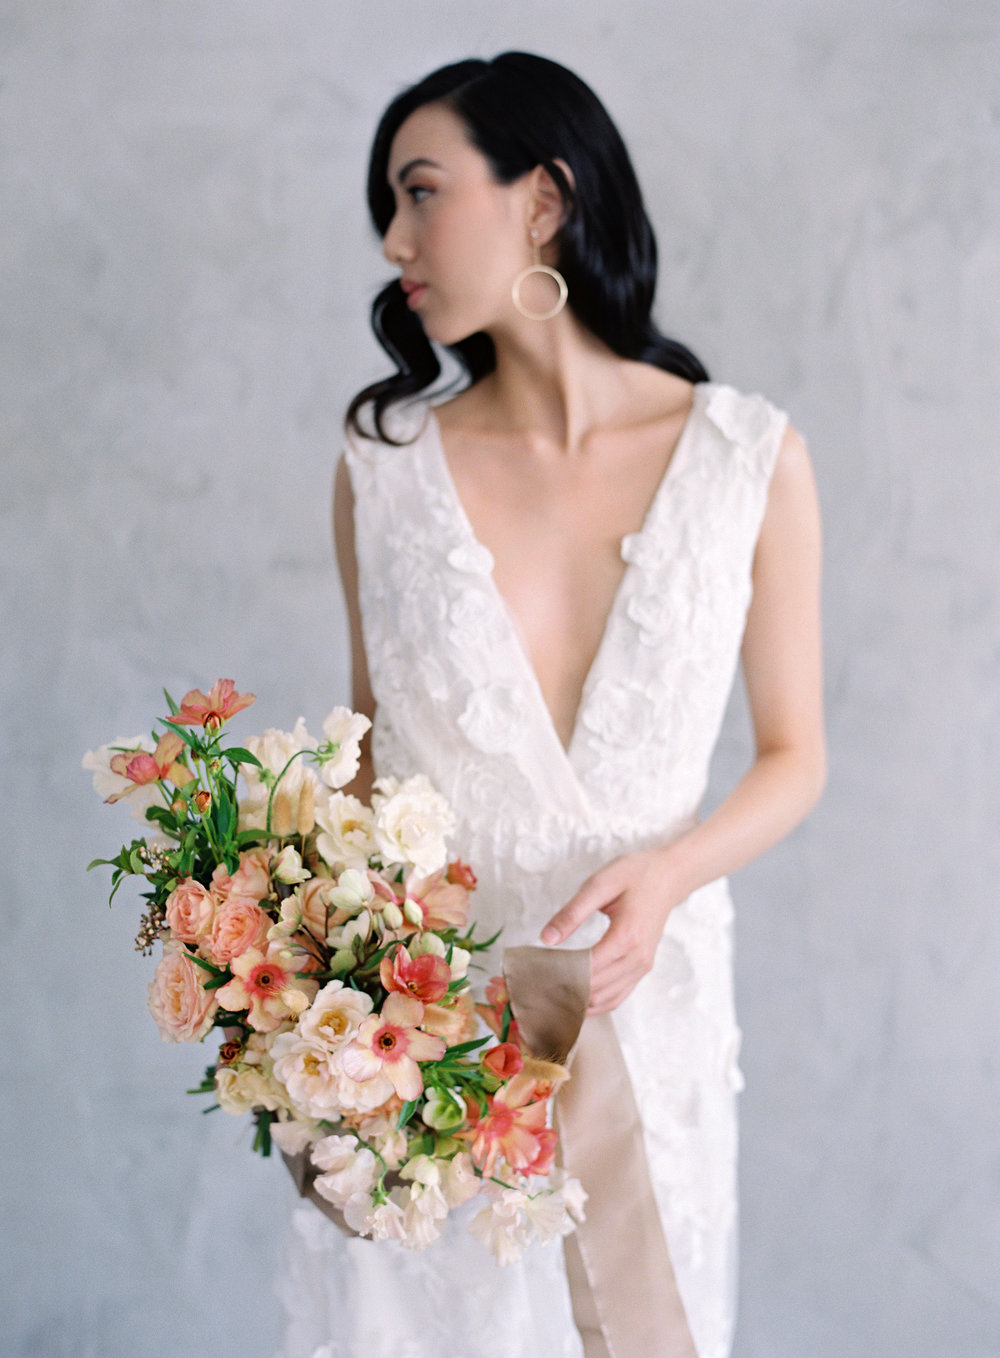 78-Bouquet_by_Ellamah-Photo_by_Christine_Donee-Gown_by_Halfpenny_London.jpg